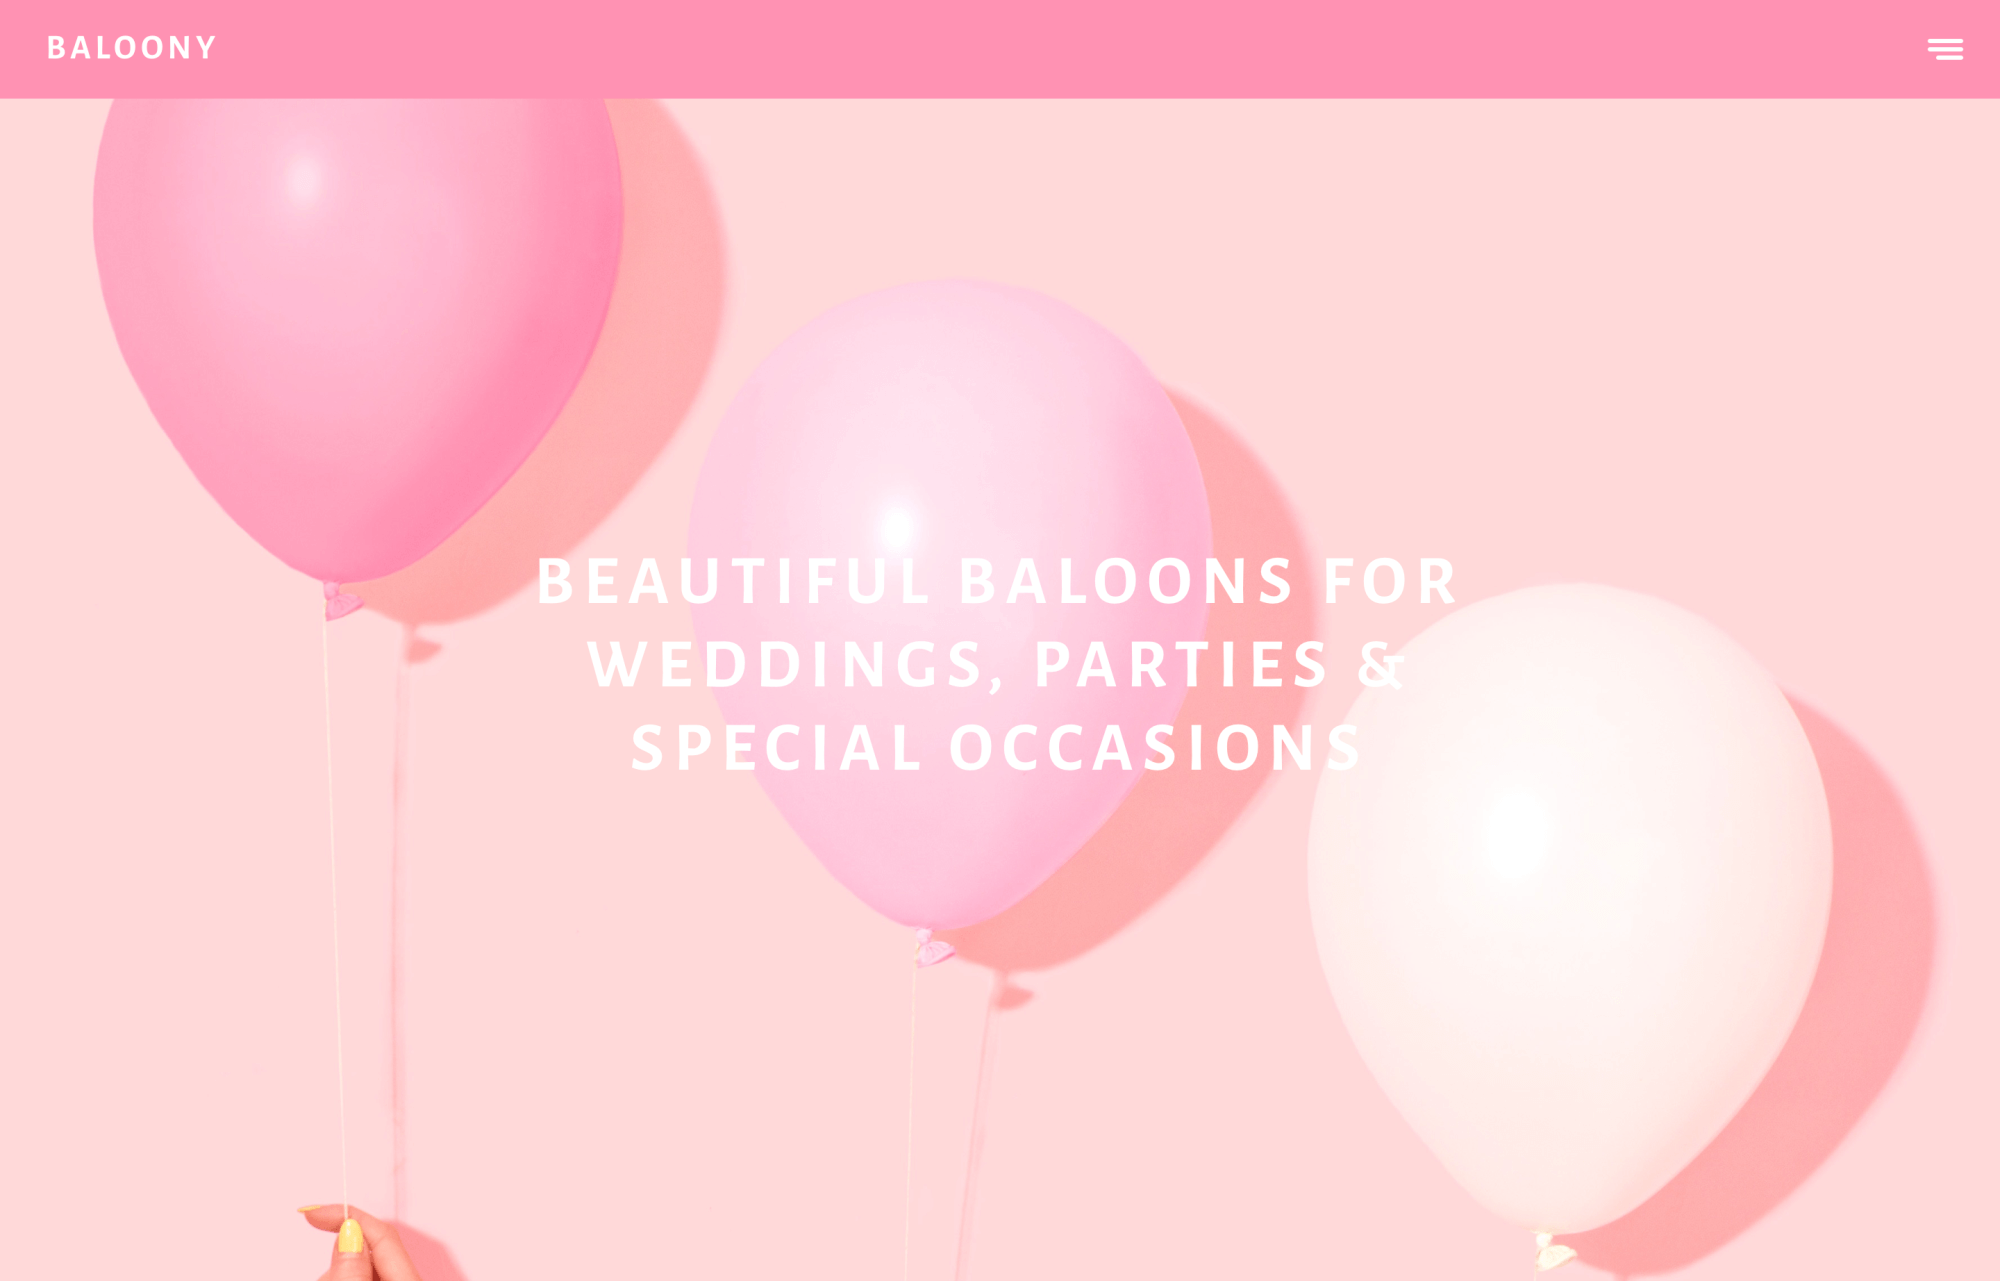 Modular Orange Website for Baloony a wedding baloon and party company